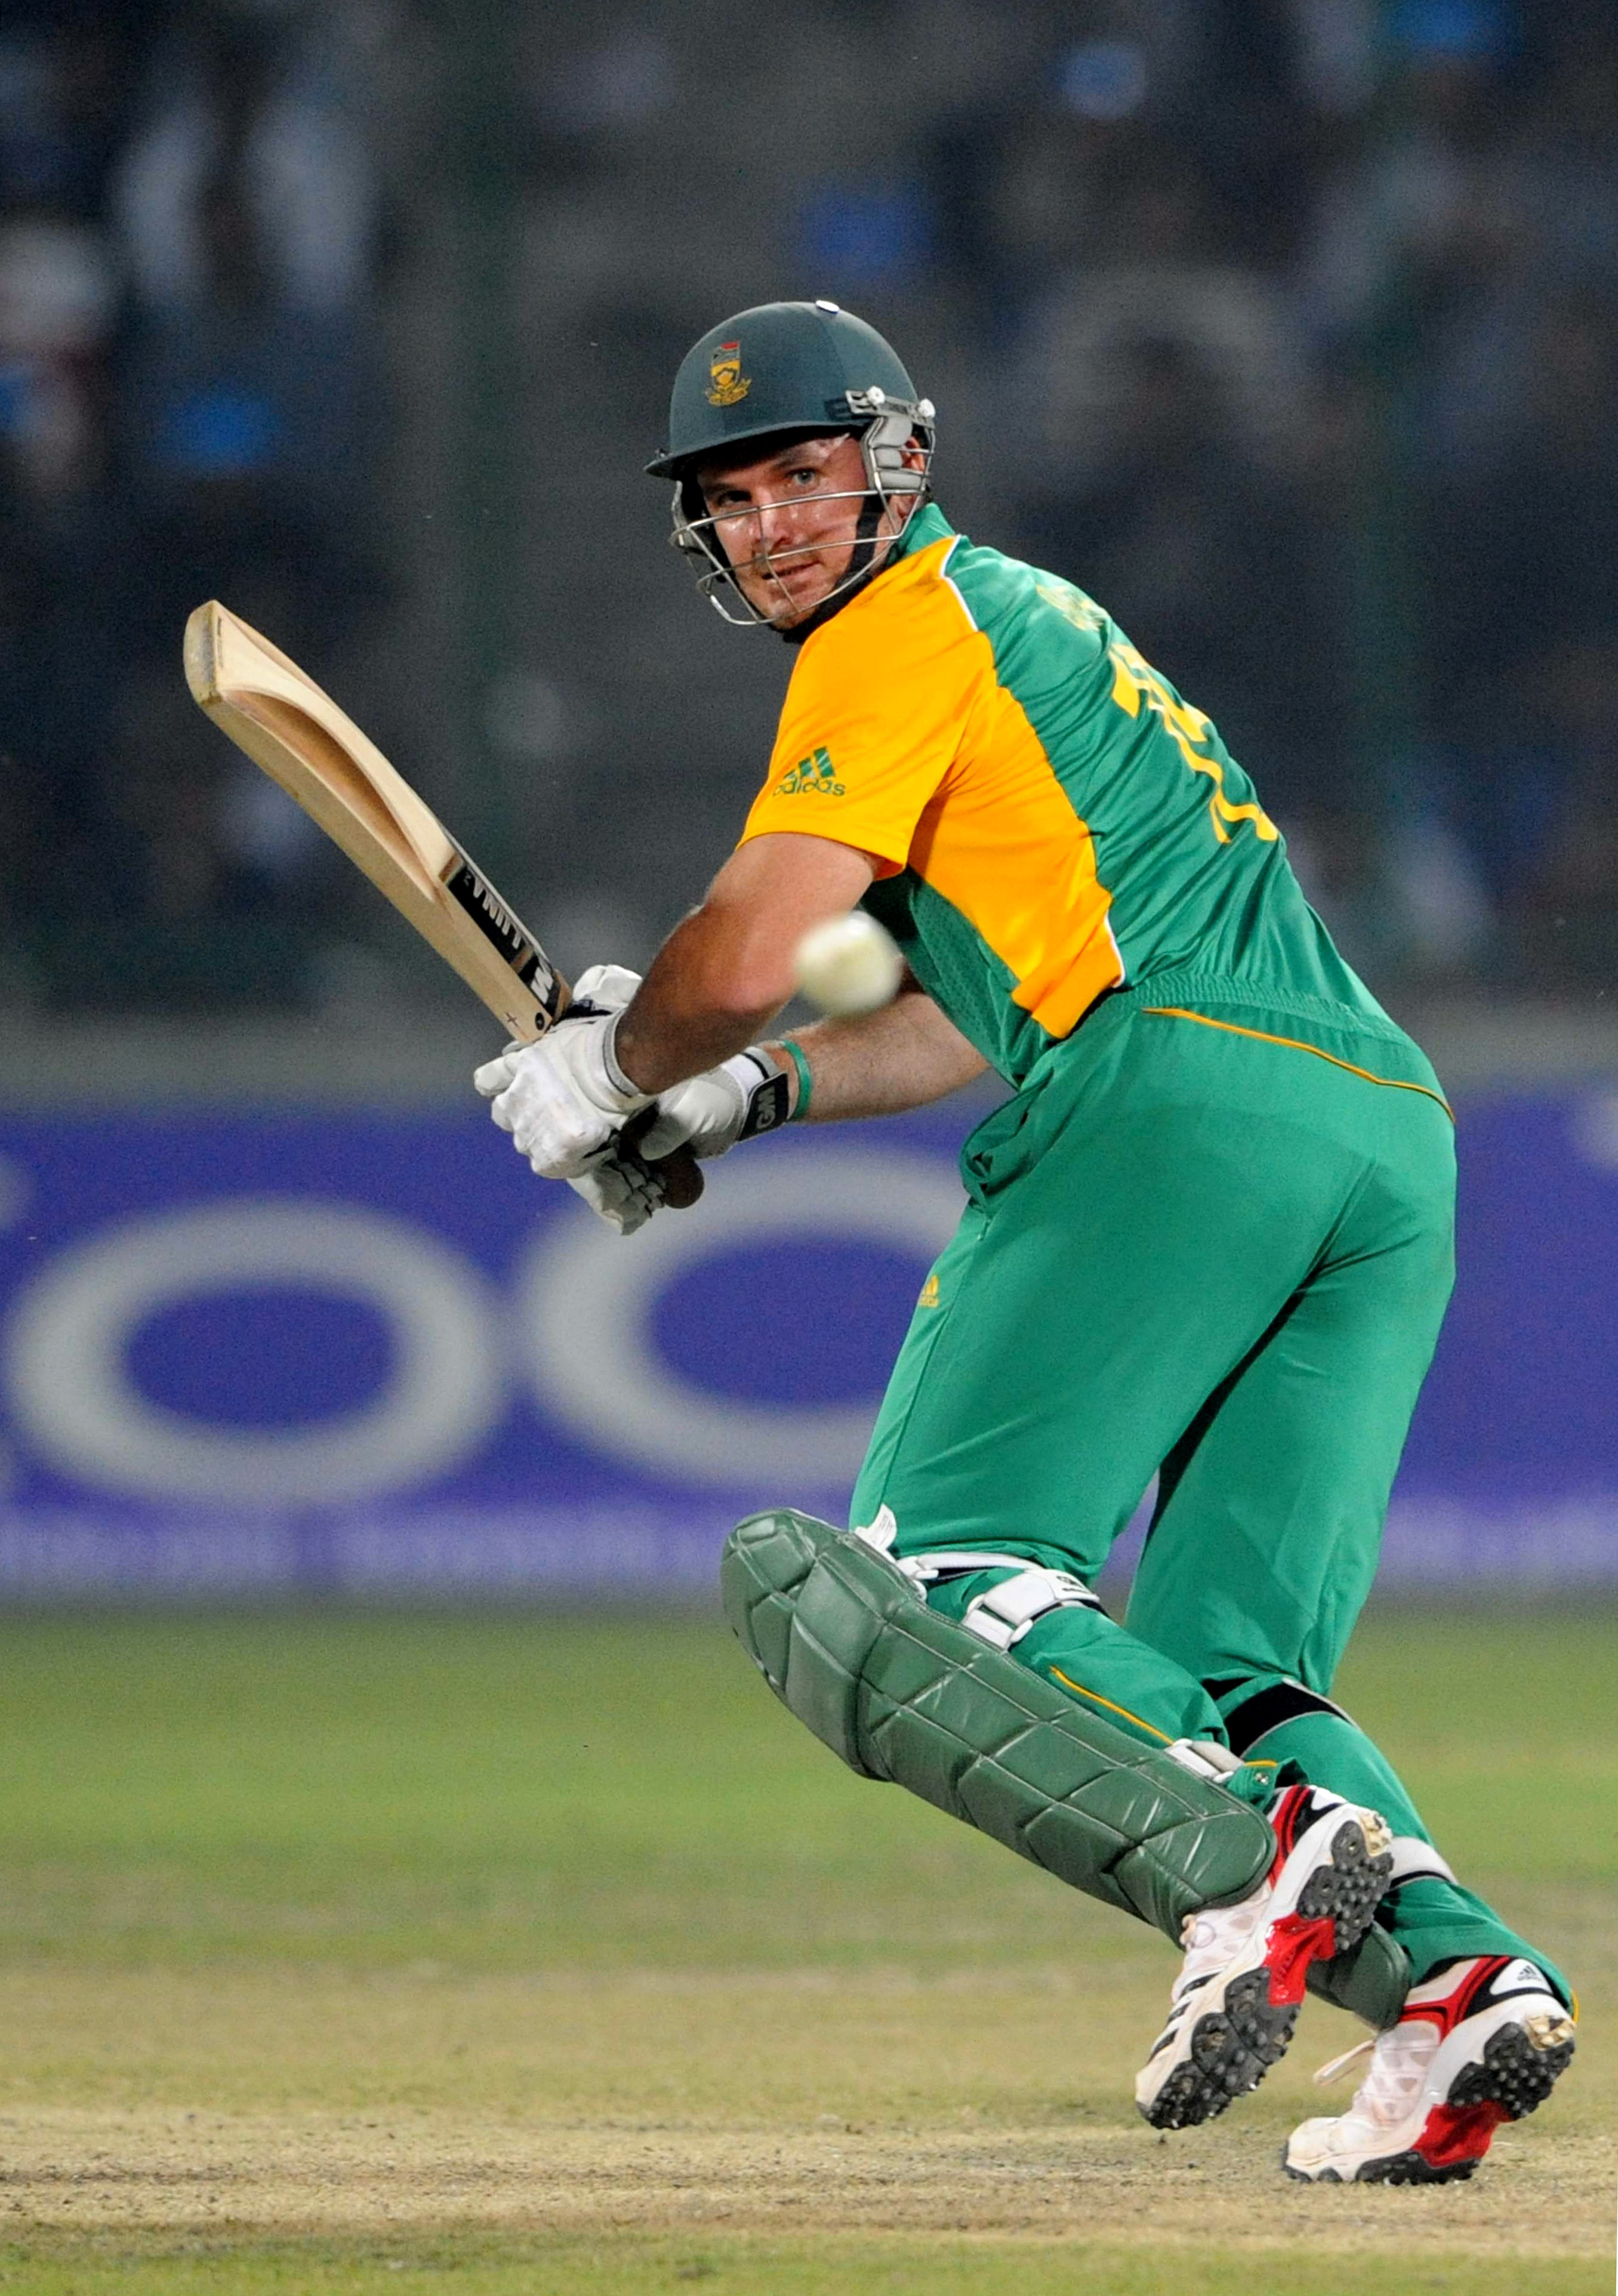 DELHI, INDIA - FEBRUARY 24:  Graeme Smith of South Africa bats during the 2011 ICC World Cup Group B match between West Indies and South Africa at Feroz Shah Kotla Stadium on February 24, 2011 in Delhi, India.  (Photo by Lee Warren/Gallo Images/Getty Imag